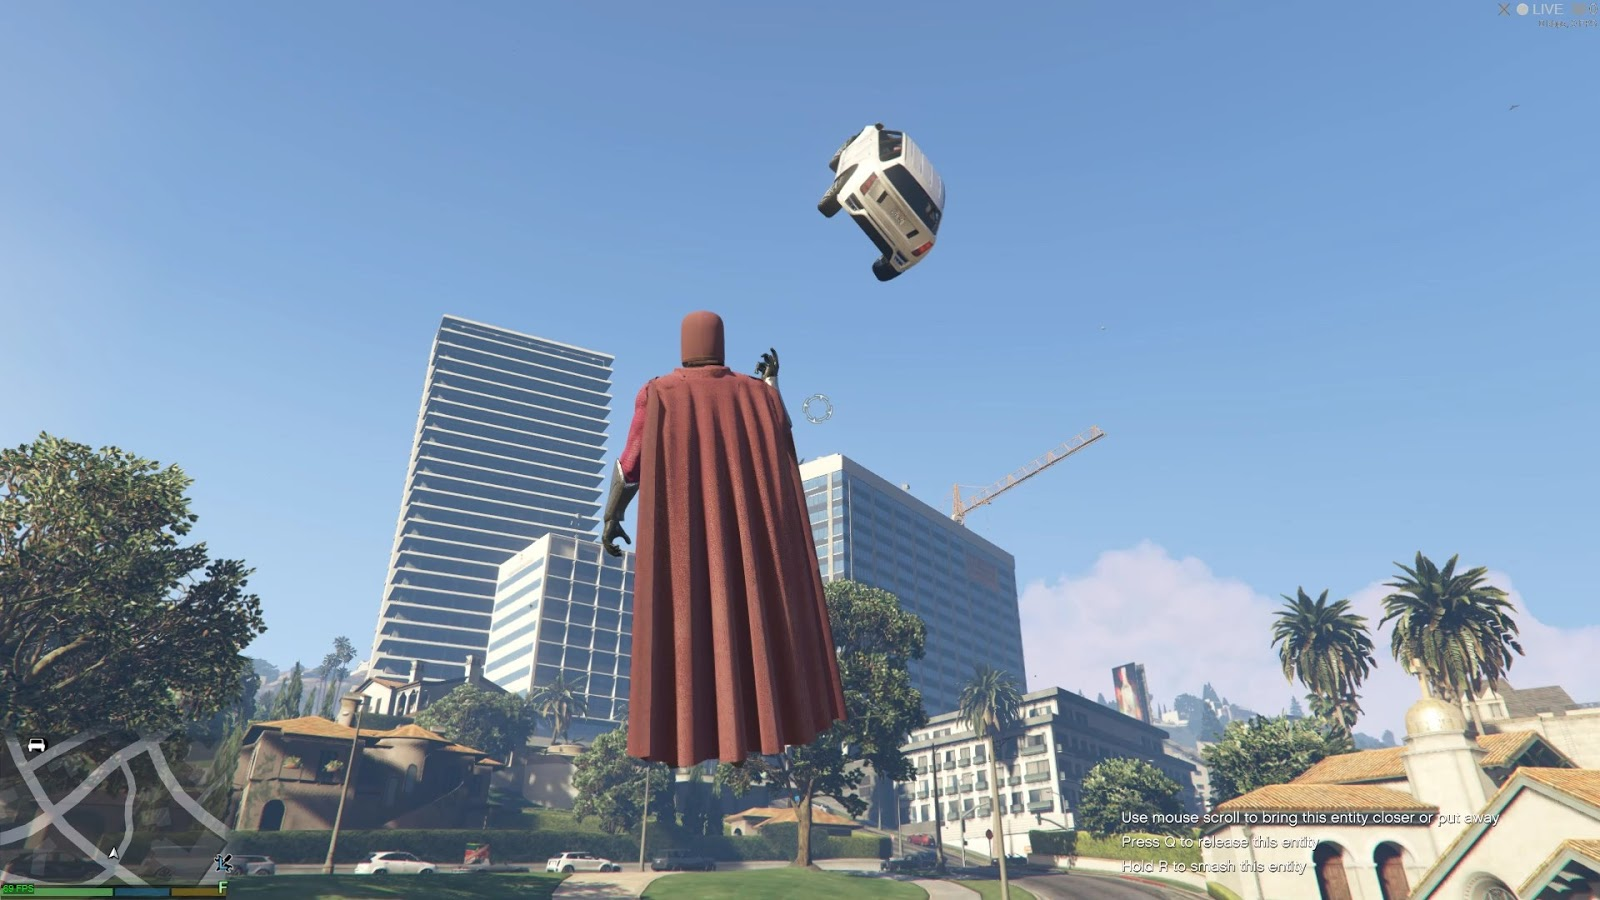 This GTA 5 mod lets you play as Magneto and take revenge on